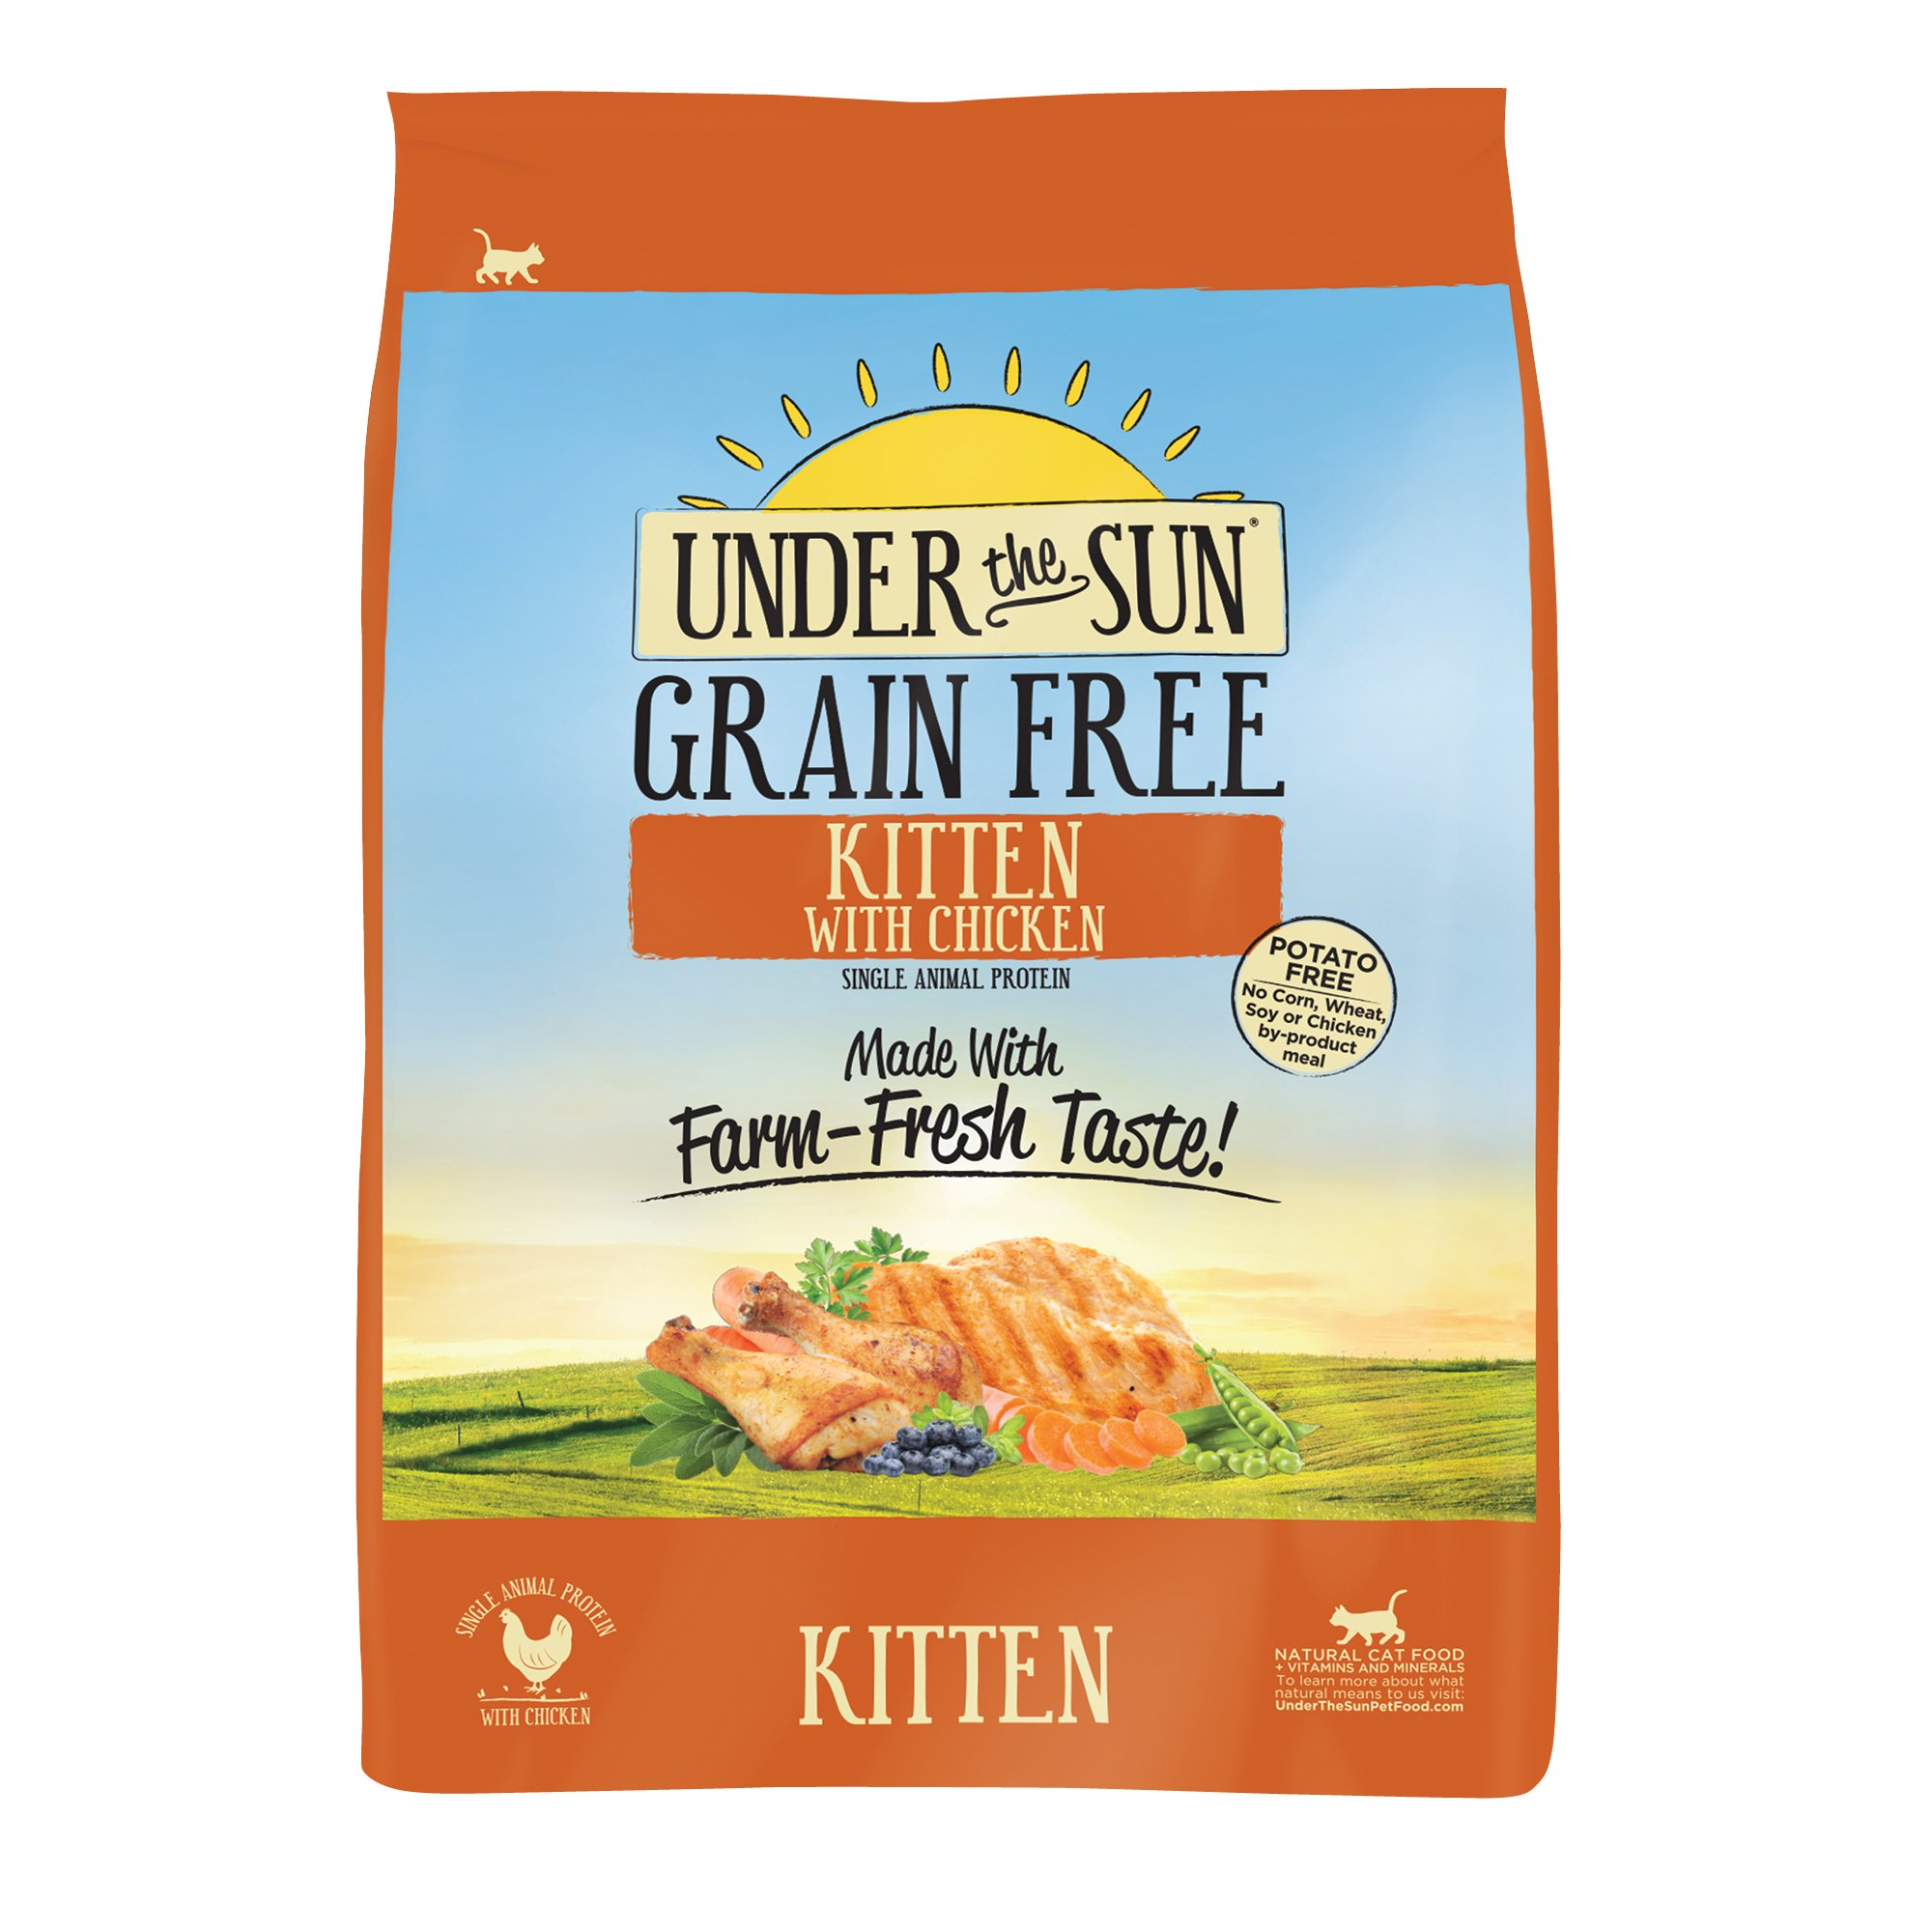 Under The Sun Grain Free Kitten Food Made With Farm-Raised Chicken